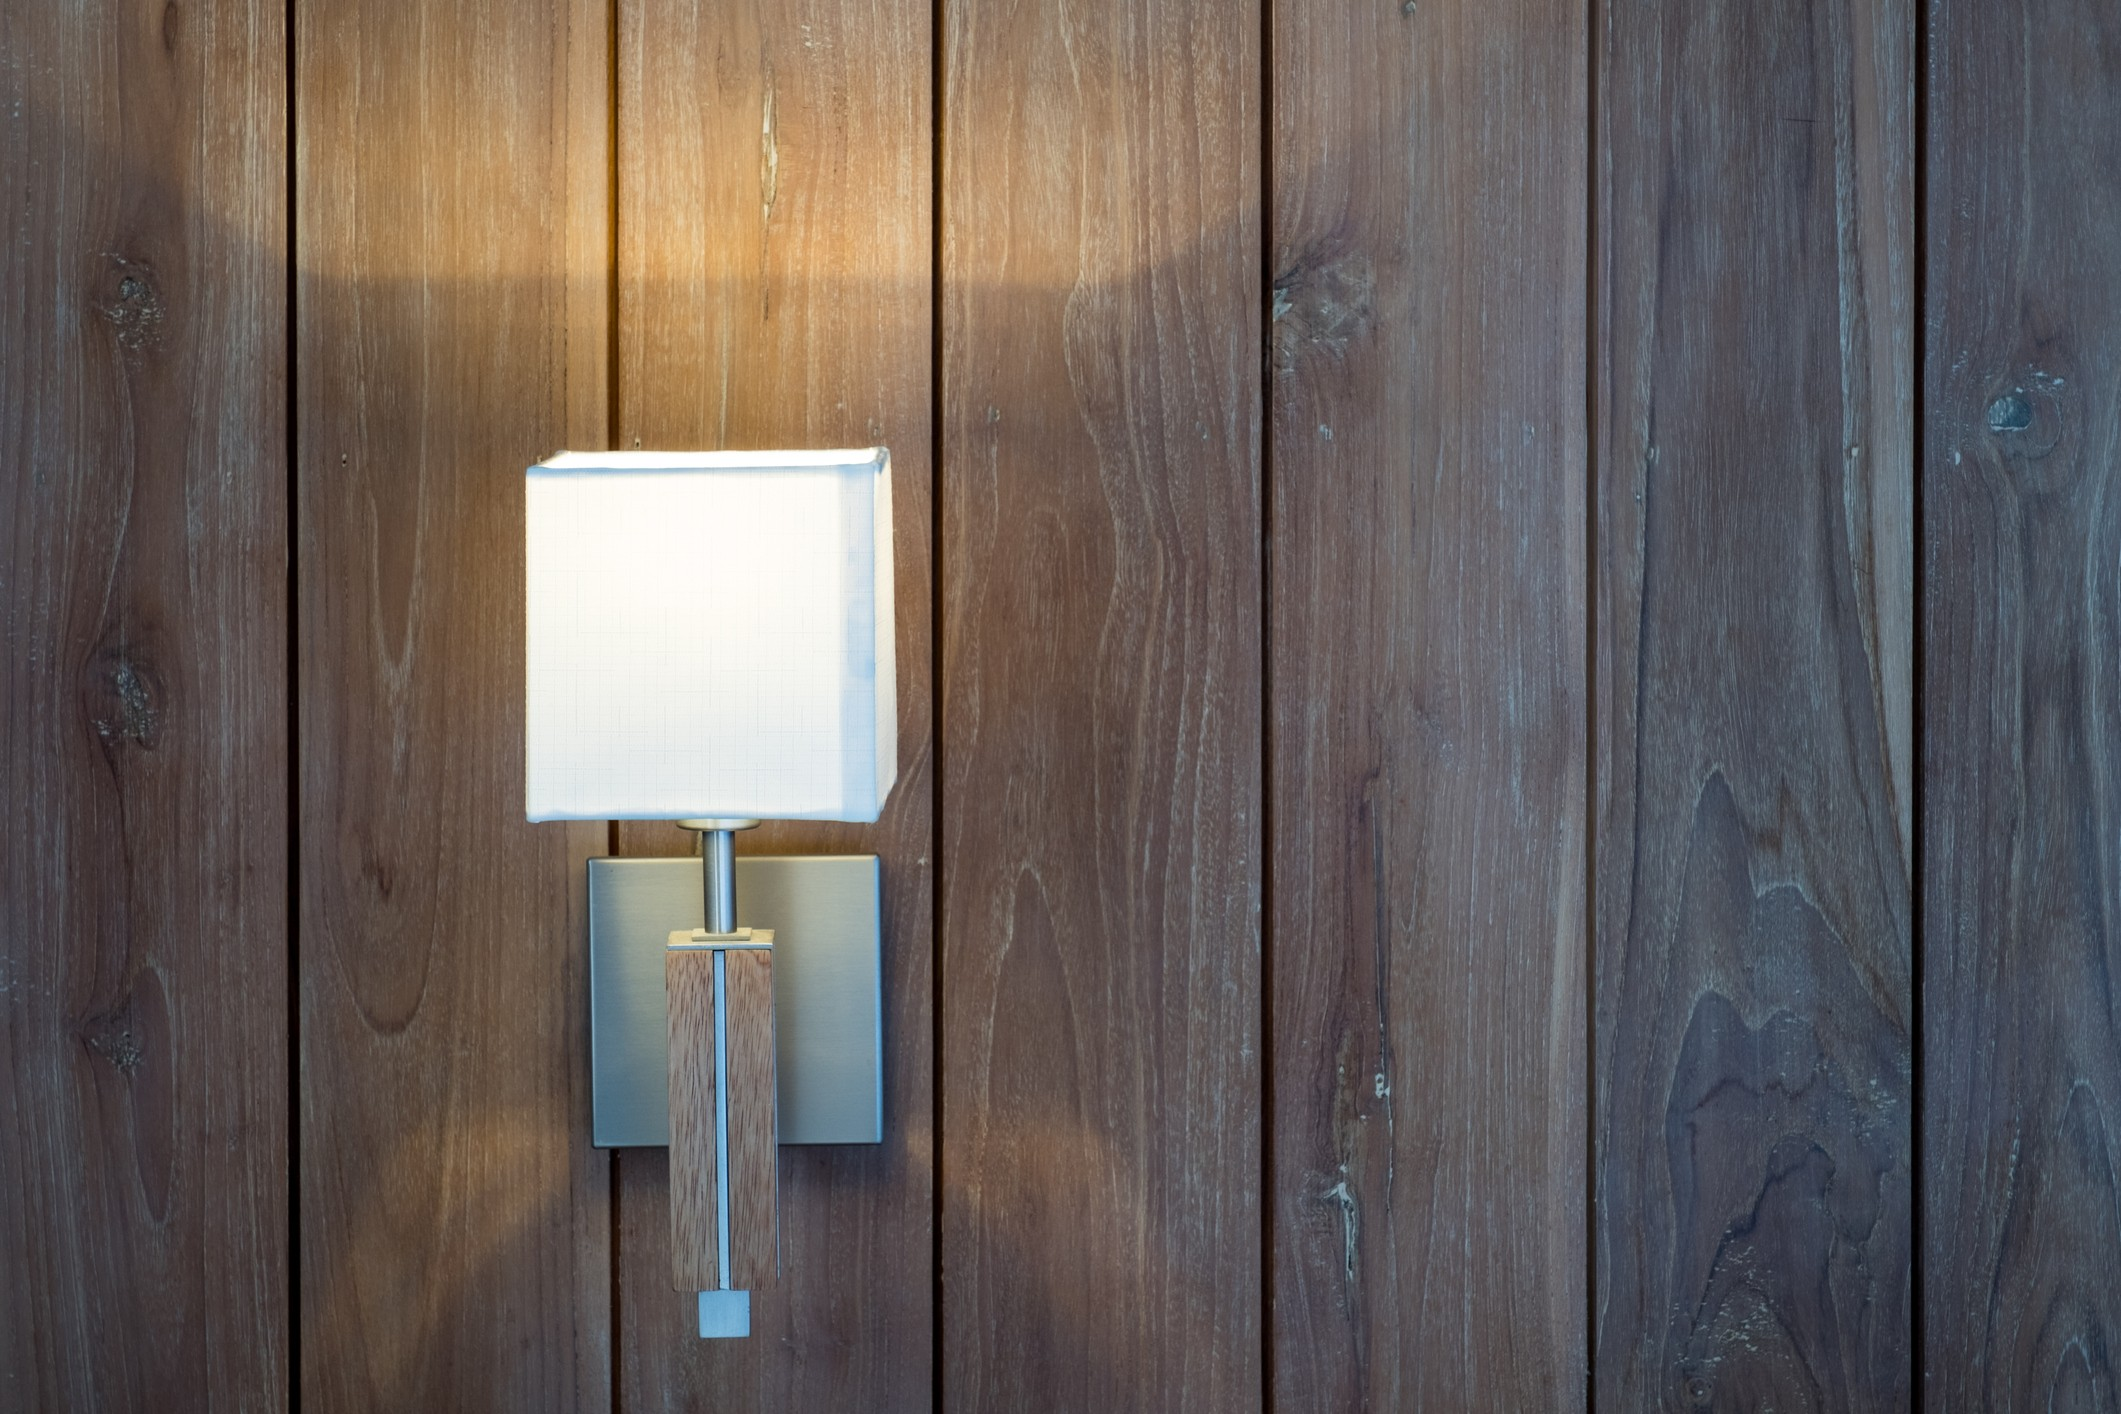 Brown Wall Paneling : Most hated home design trends that are back in style now